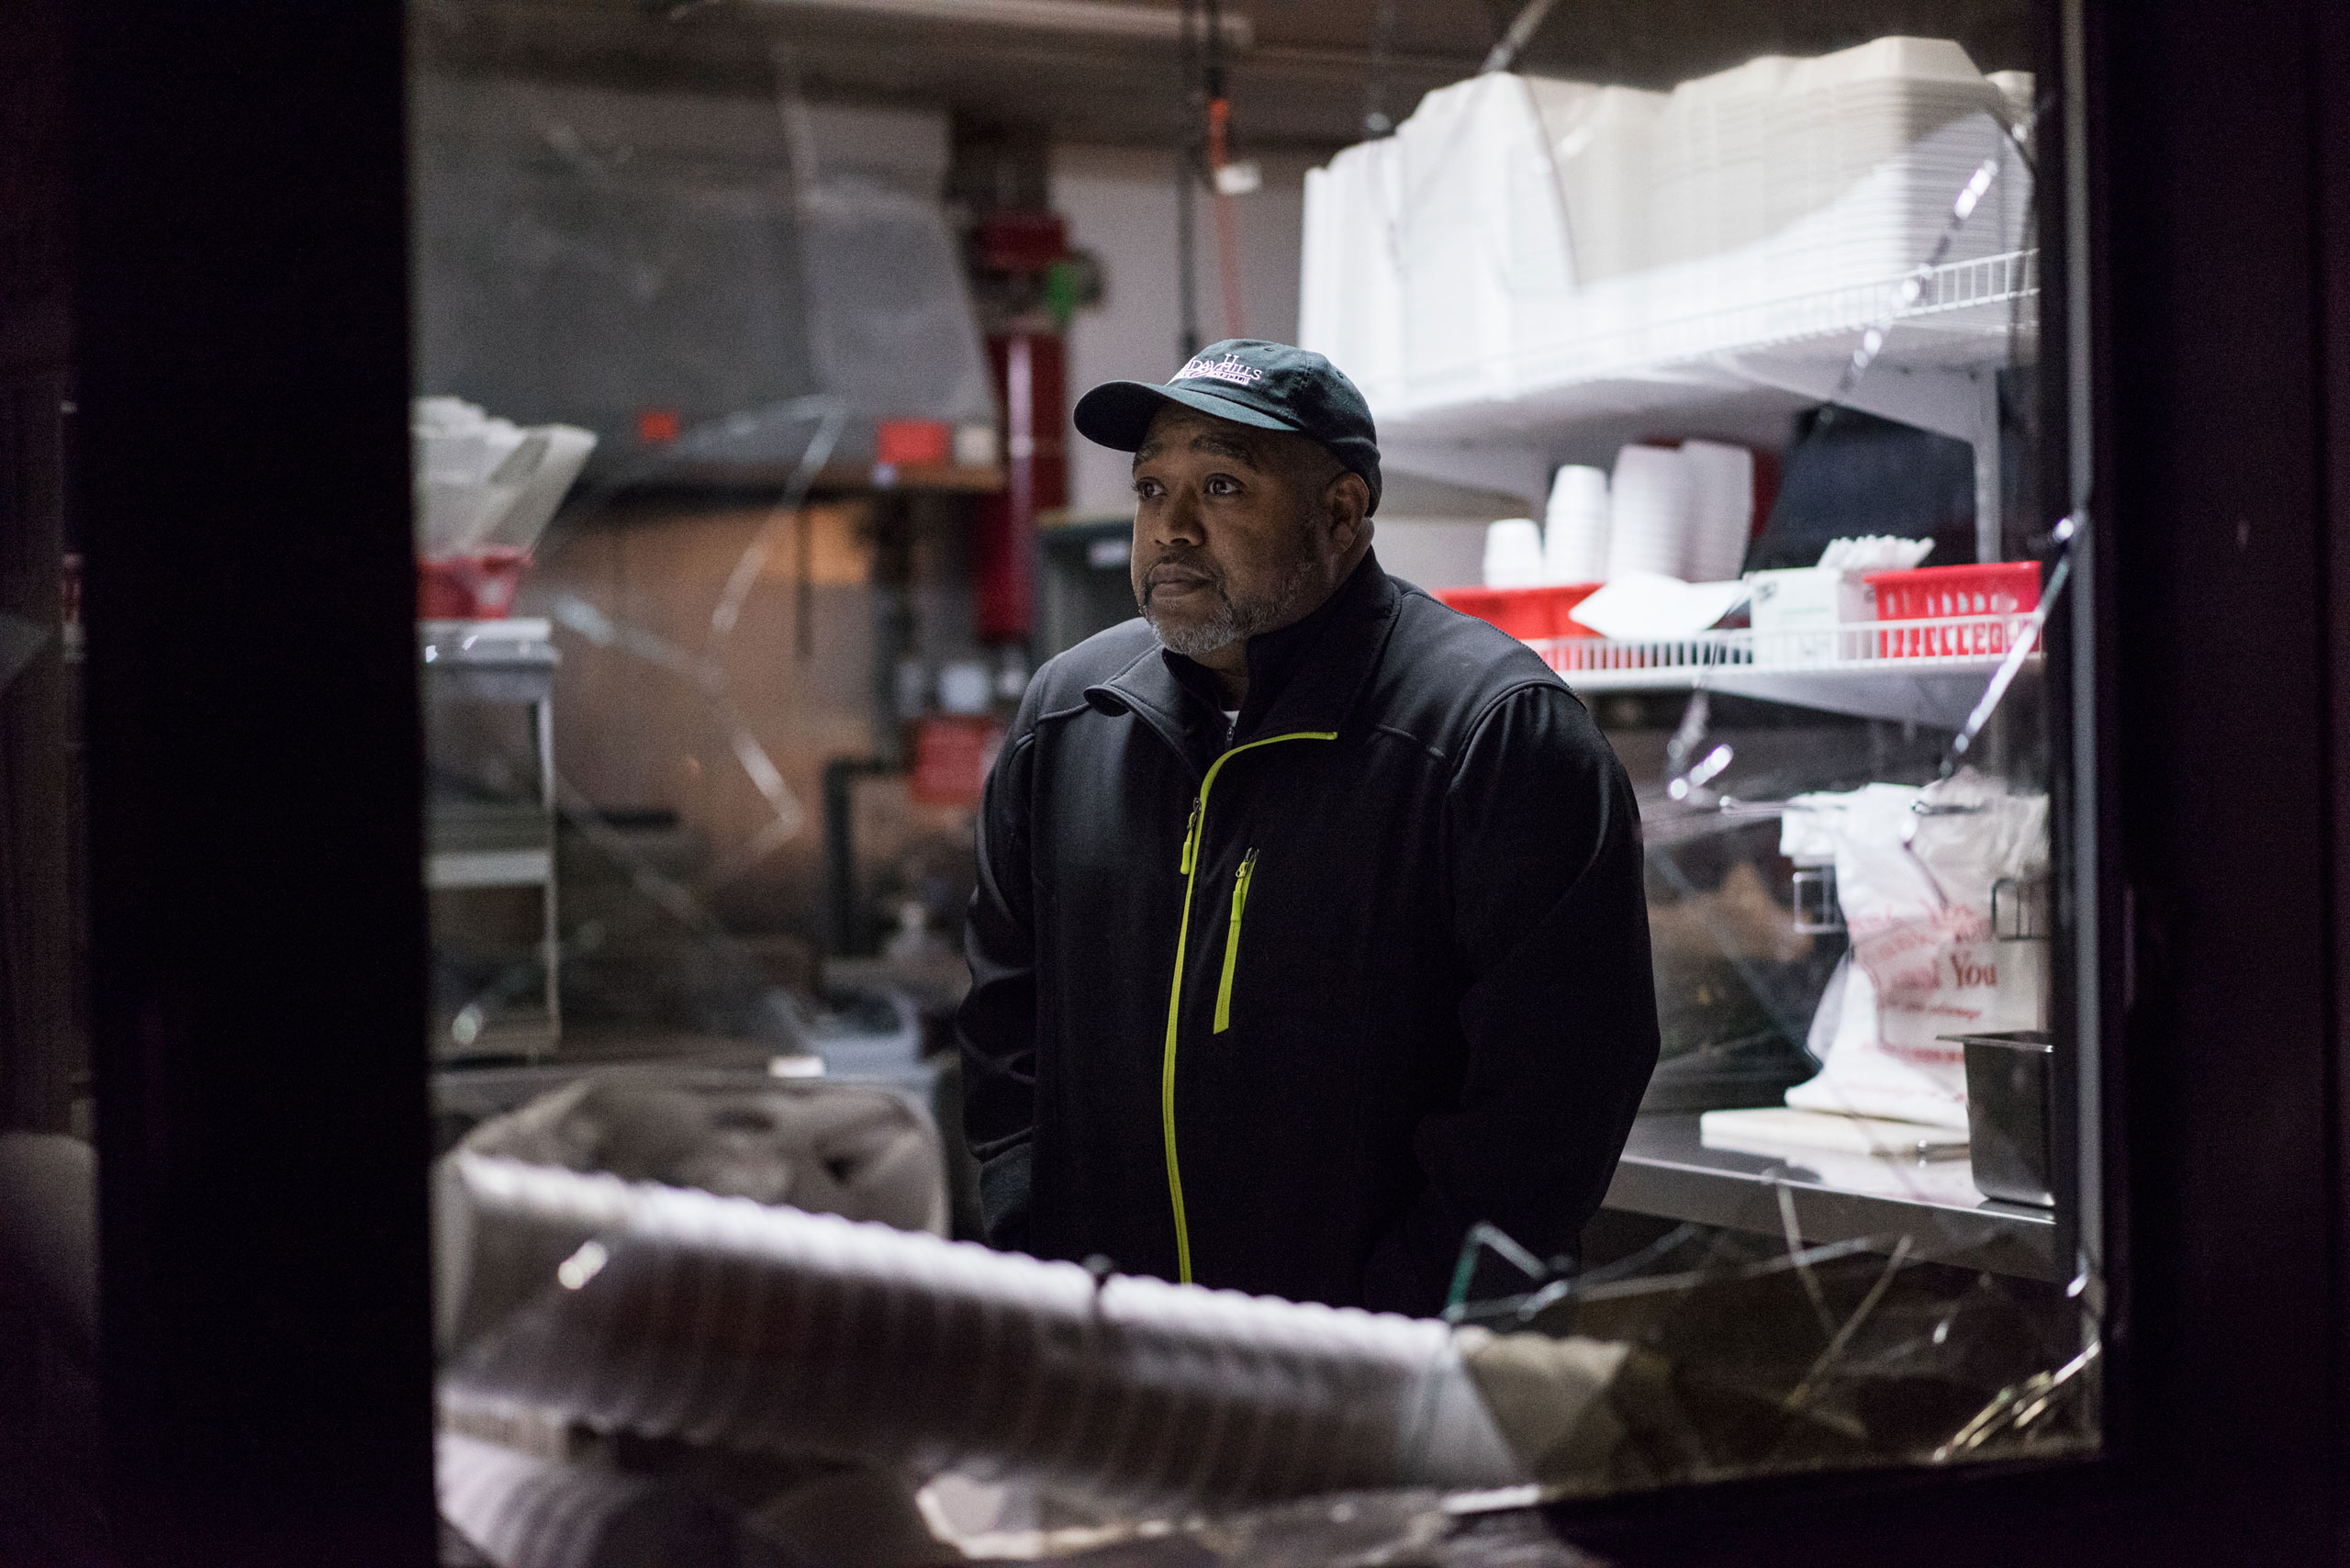 Patrick London surveys the damage at his fast food restaurant London's Wing House after it was looted during protests on Nov. 24, 2014.